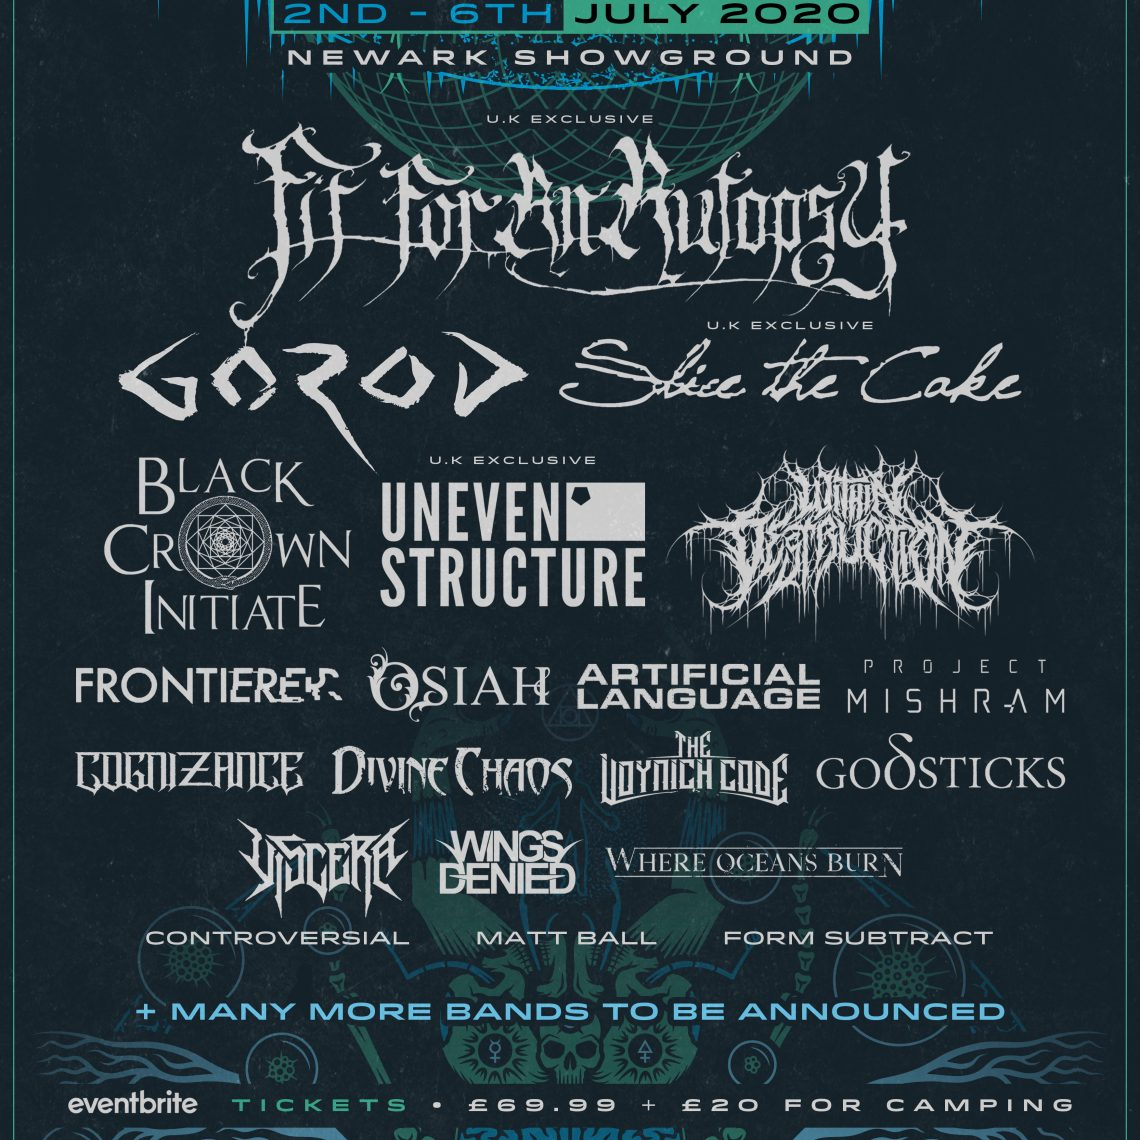 UK TECH-FEST announces Fit For An Autopsy, Gorod, Slice The Cake and 17 more for 2020  2nd-6th July 2019 at the Newark Showground